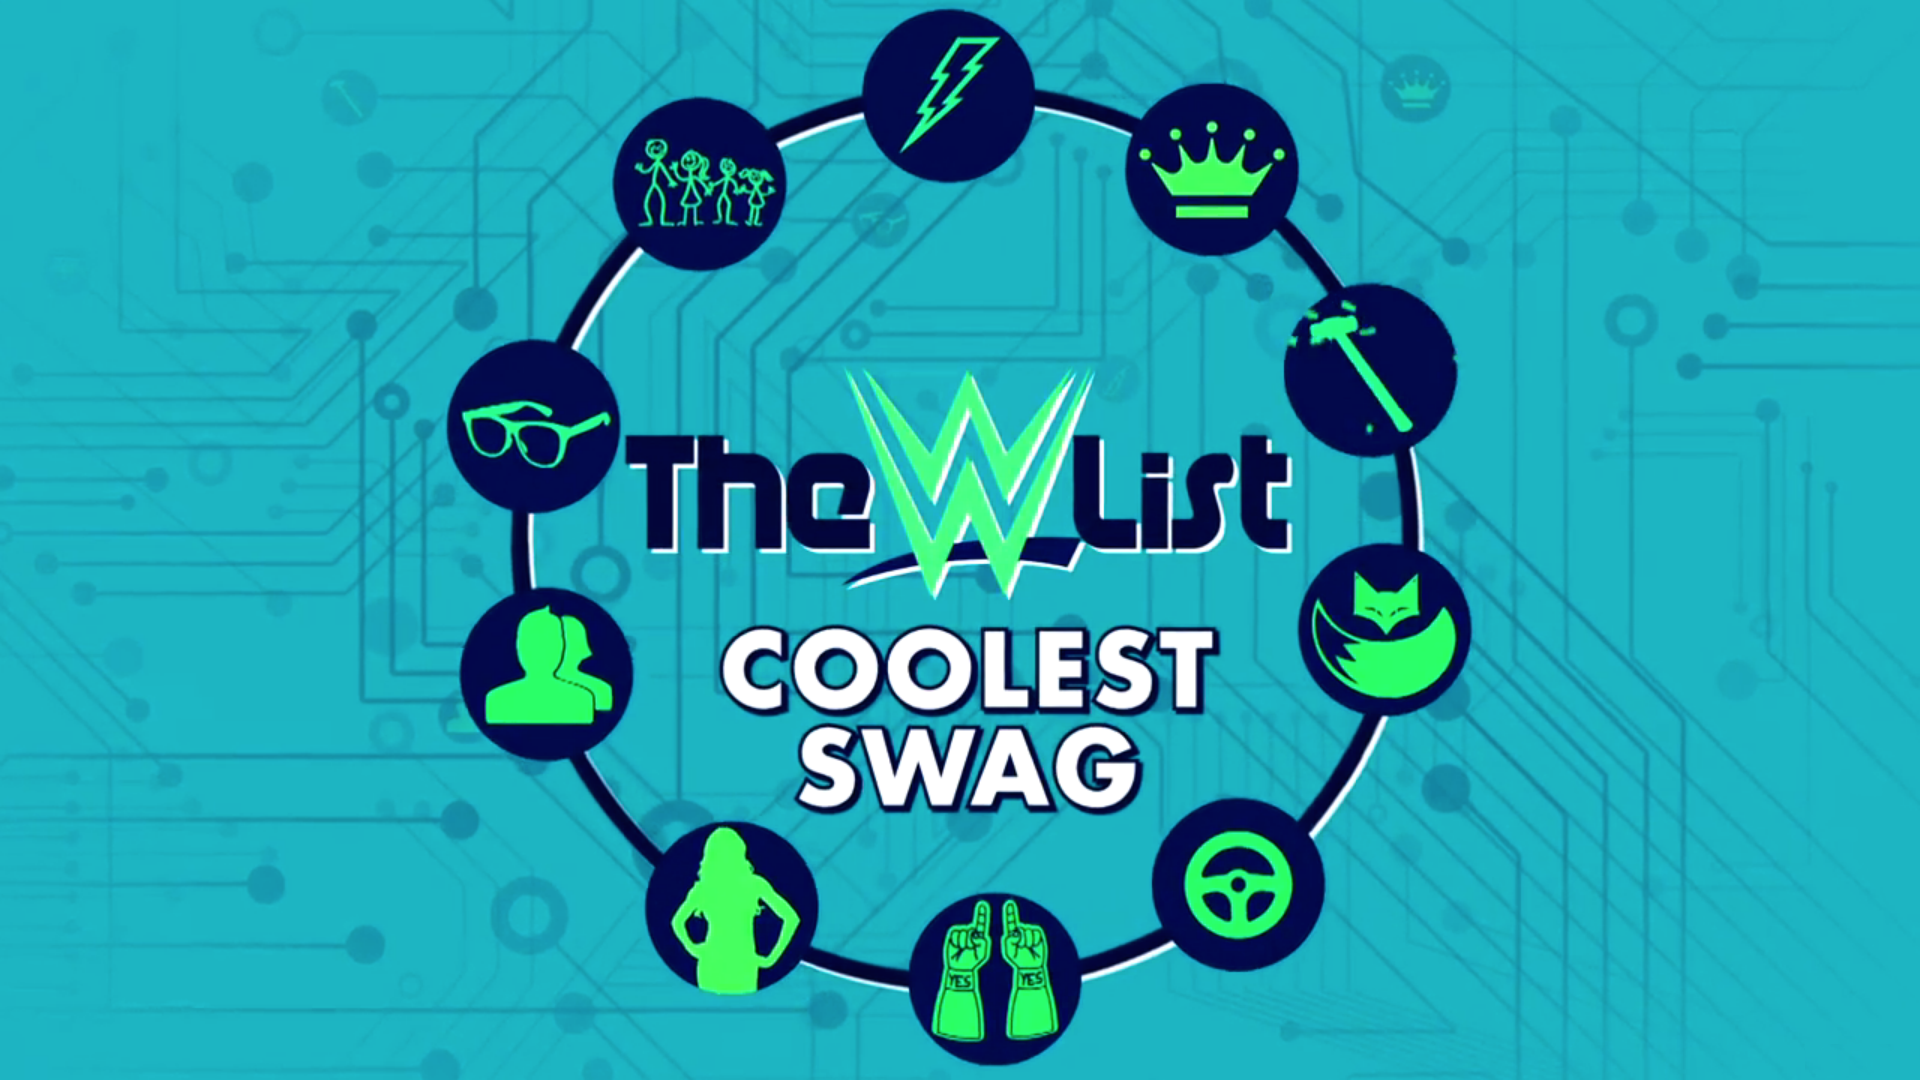 Coolest Swag